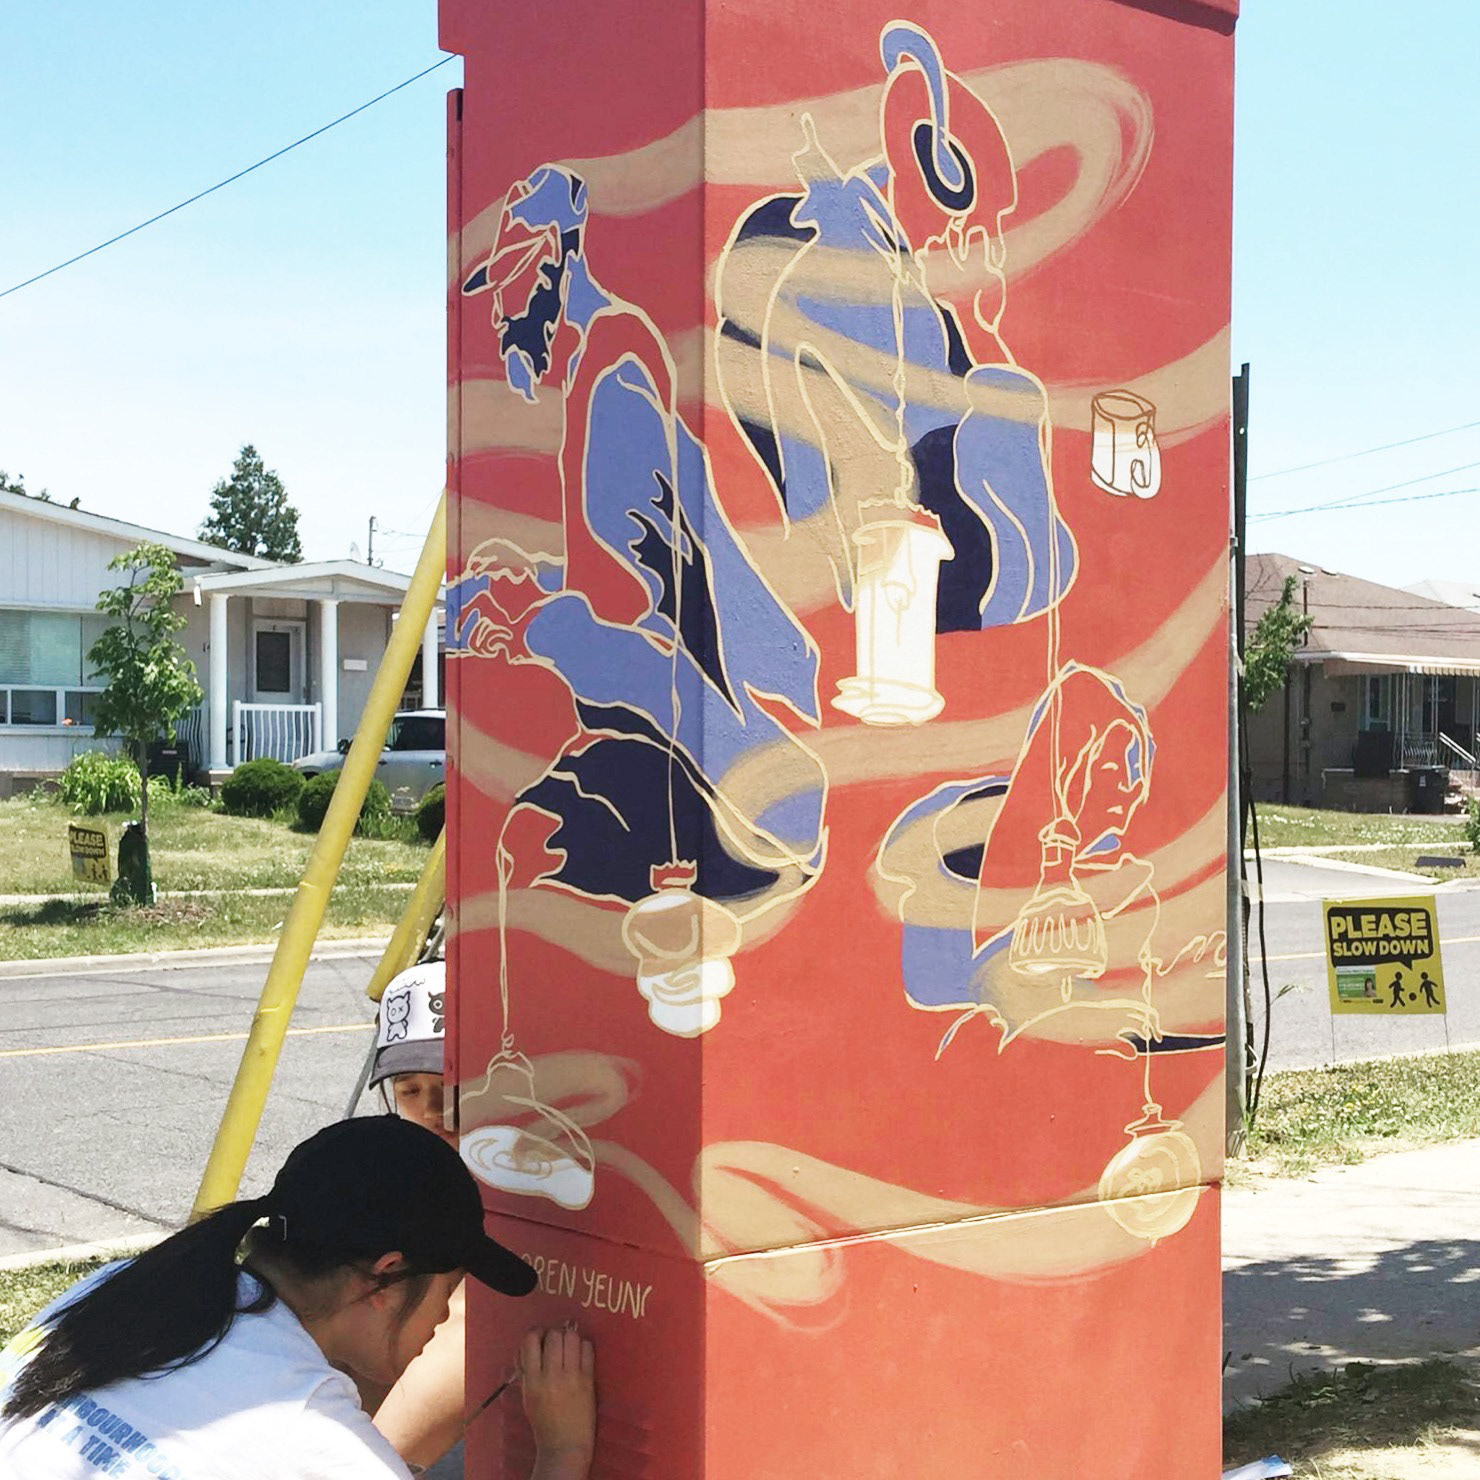 loren yeung coffee traffic box mural for city of toronto s streetartoronto 2016 outside the box program located at sheppard ave and northover st